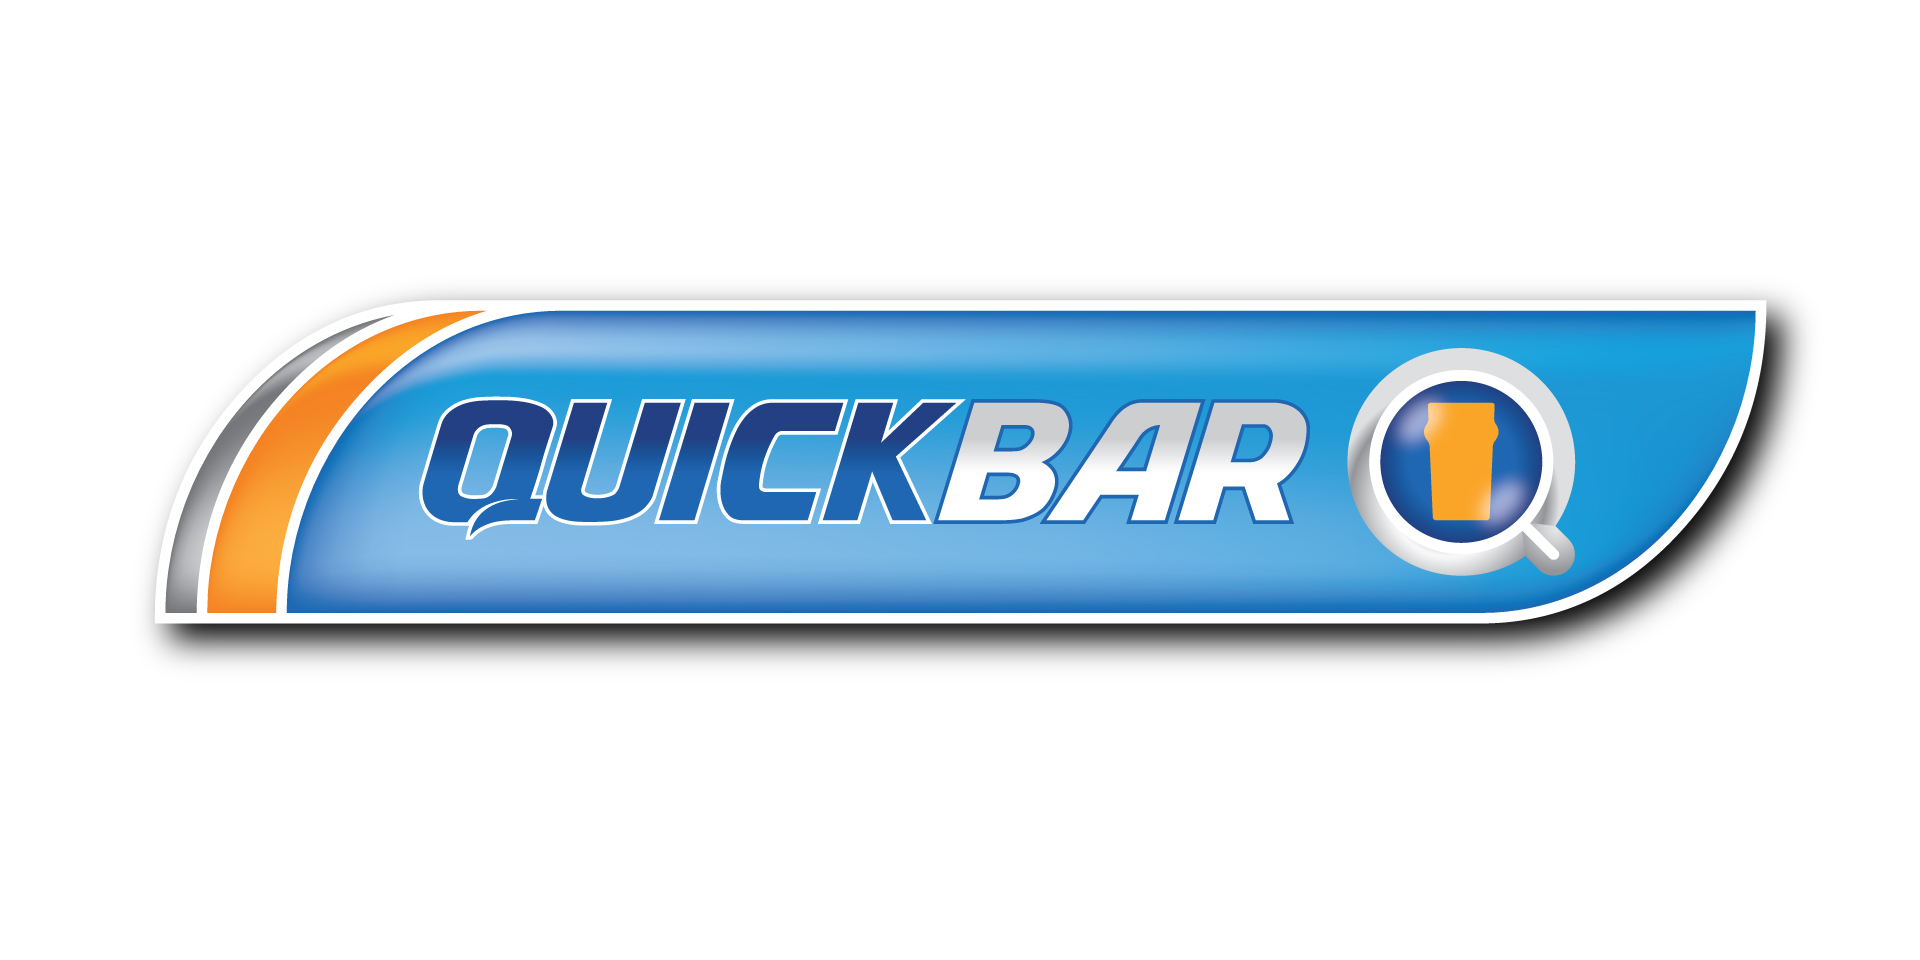 B009-2066-QuickBar-case-study-Wide-1.jpg